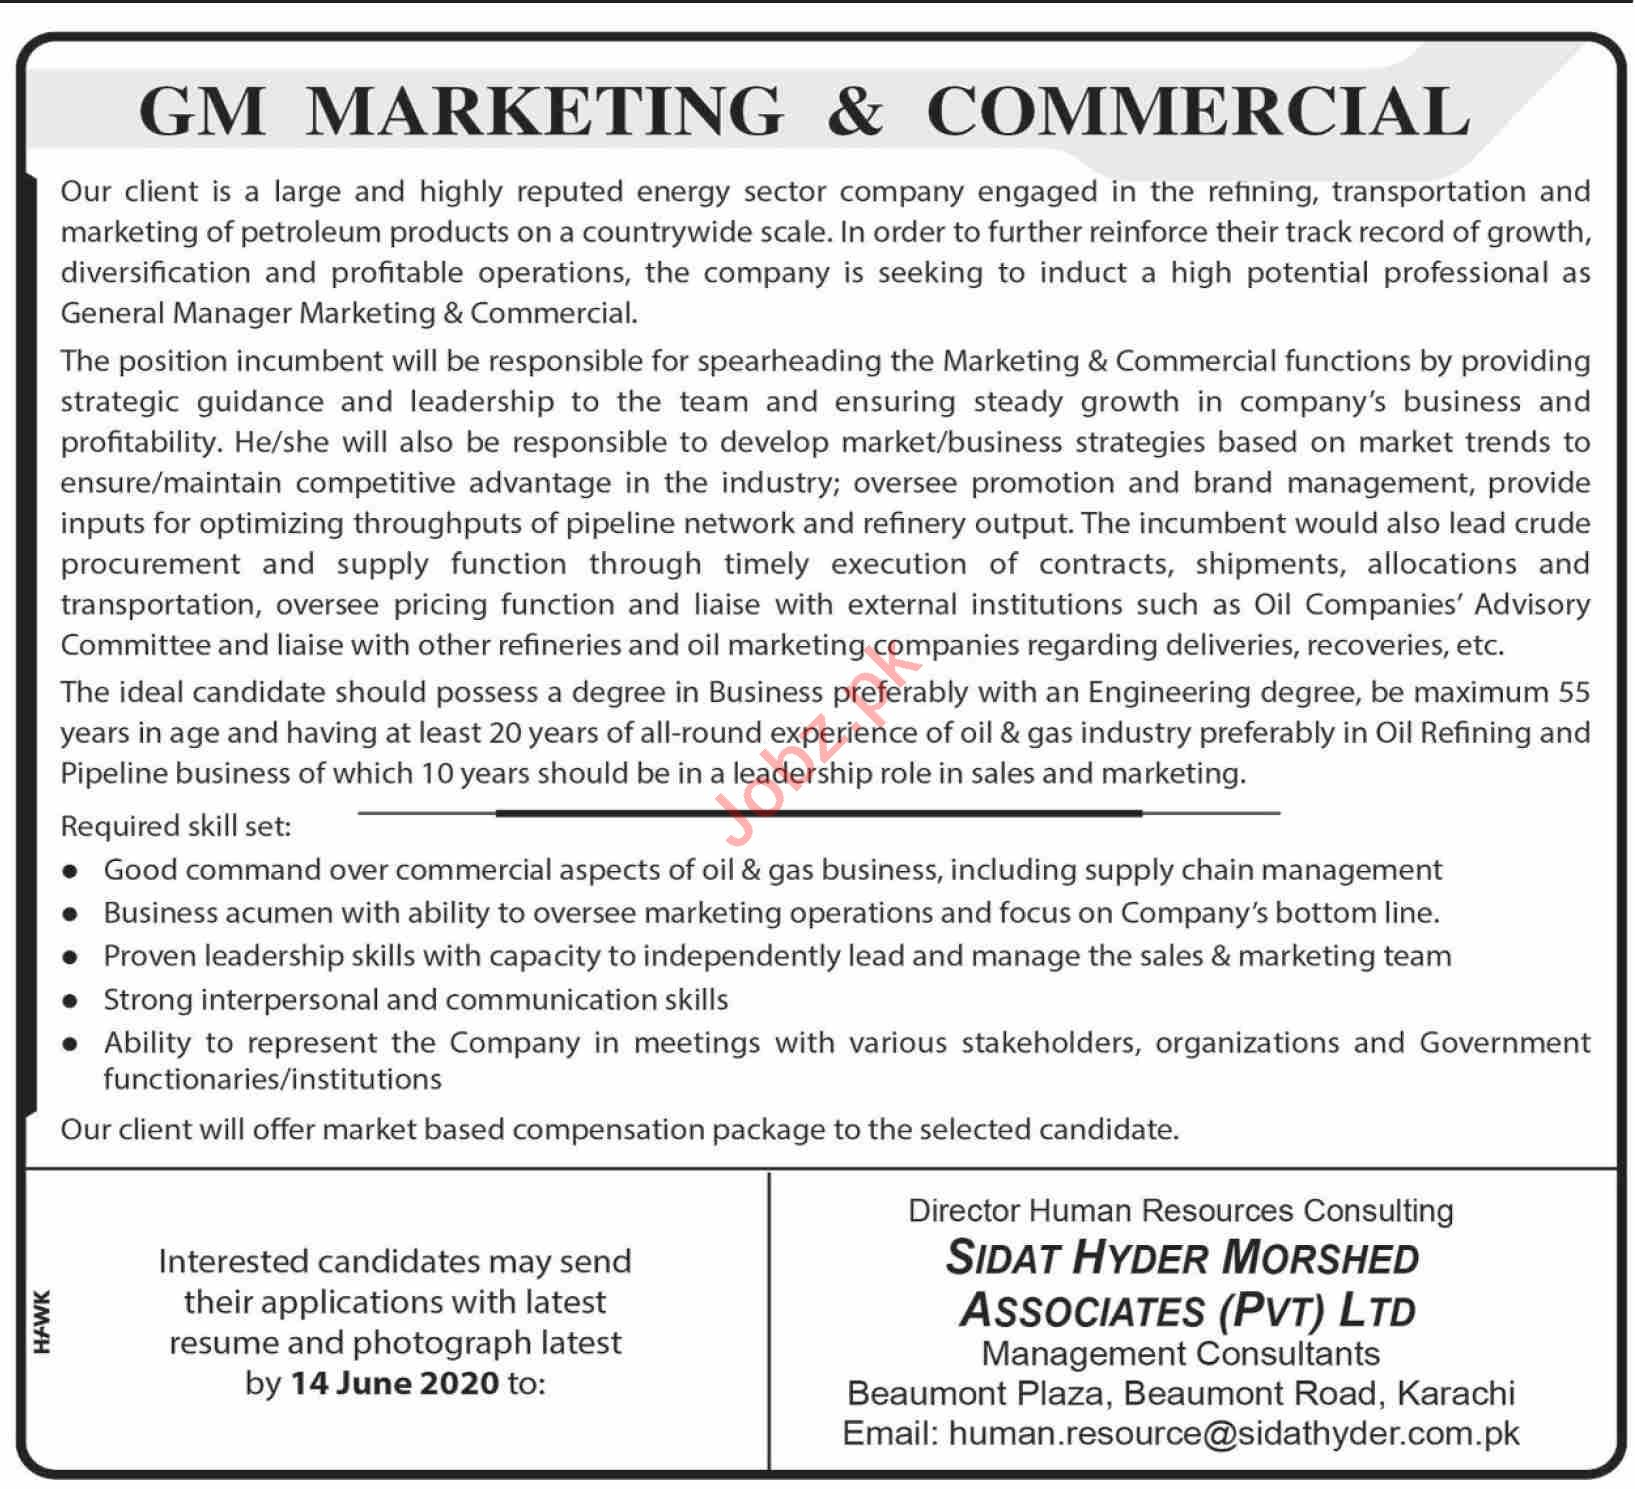 GM Marketing & Commercial Jobs 2020 in Karachi